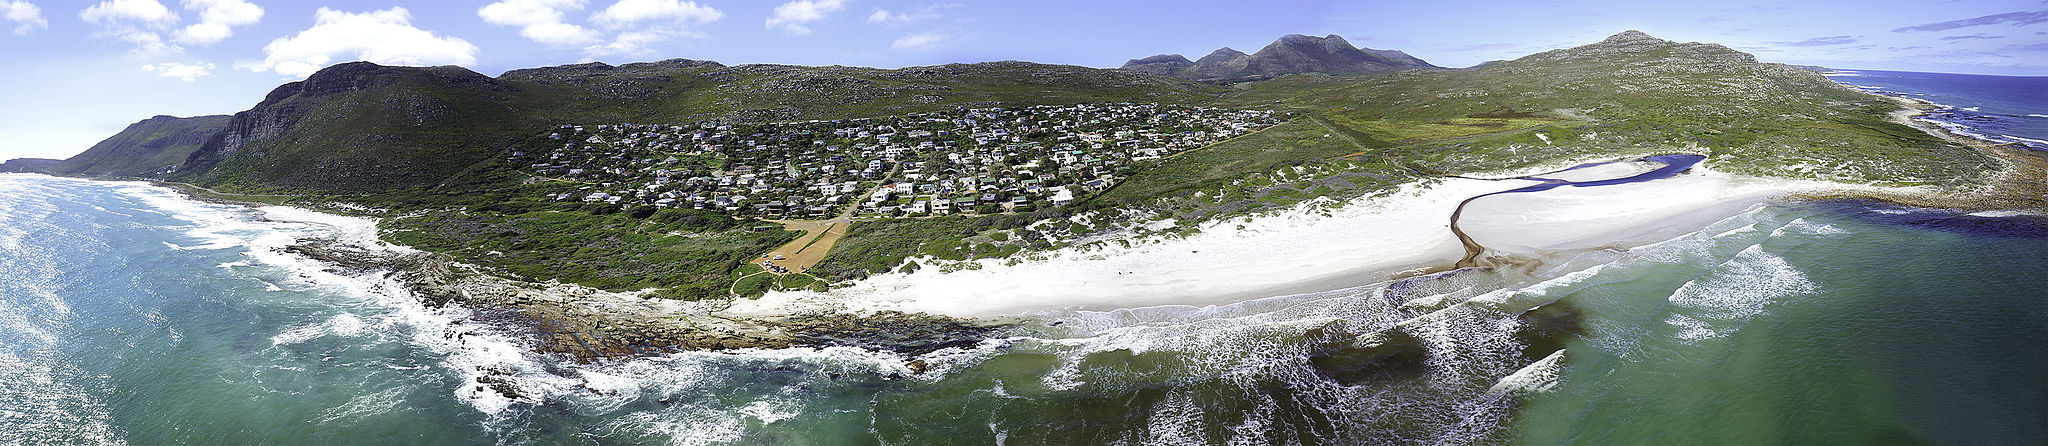 Scarborough Western Cape Coastline and City View